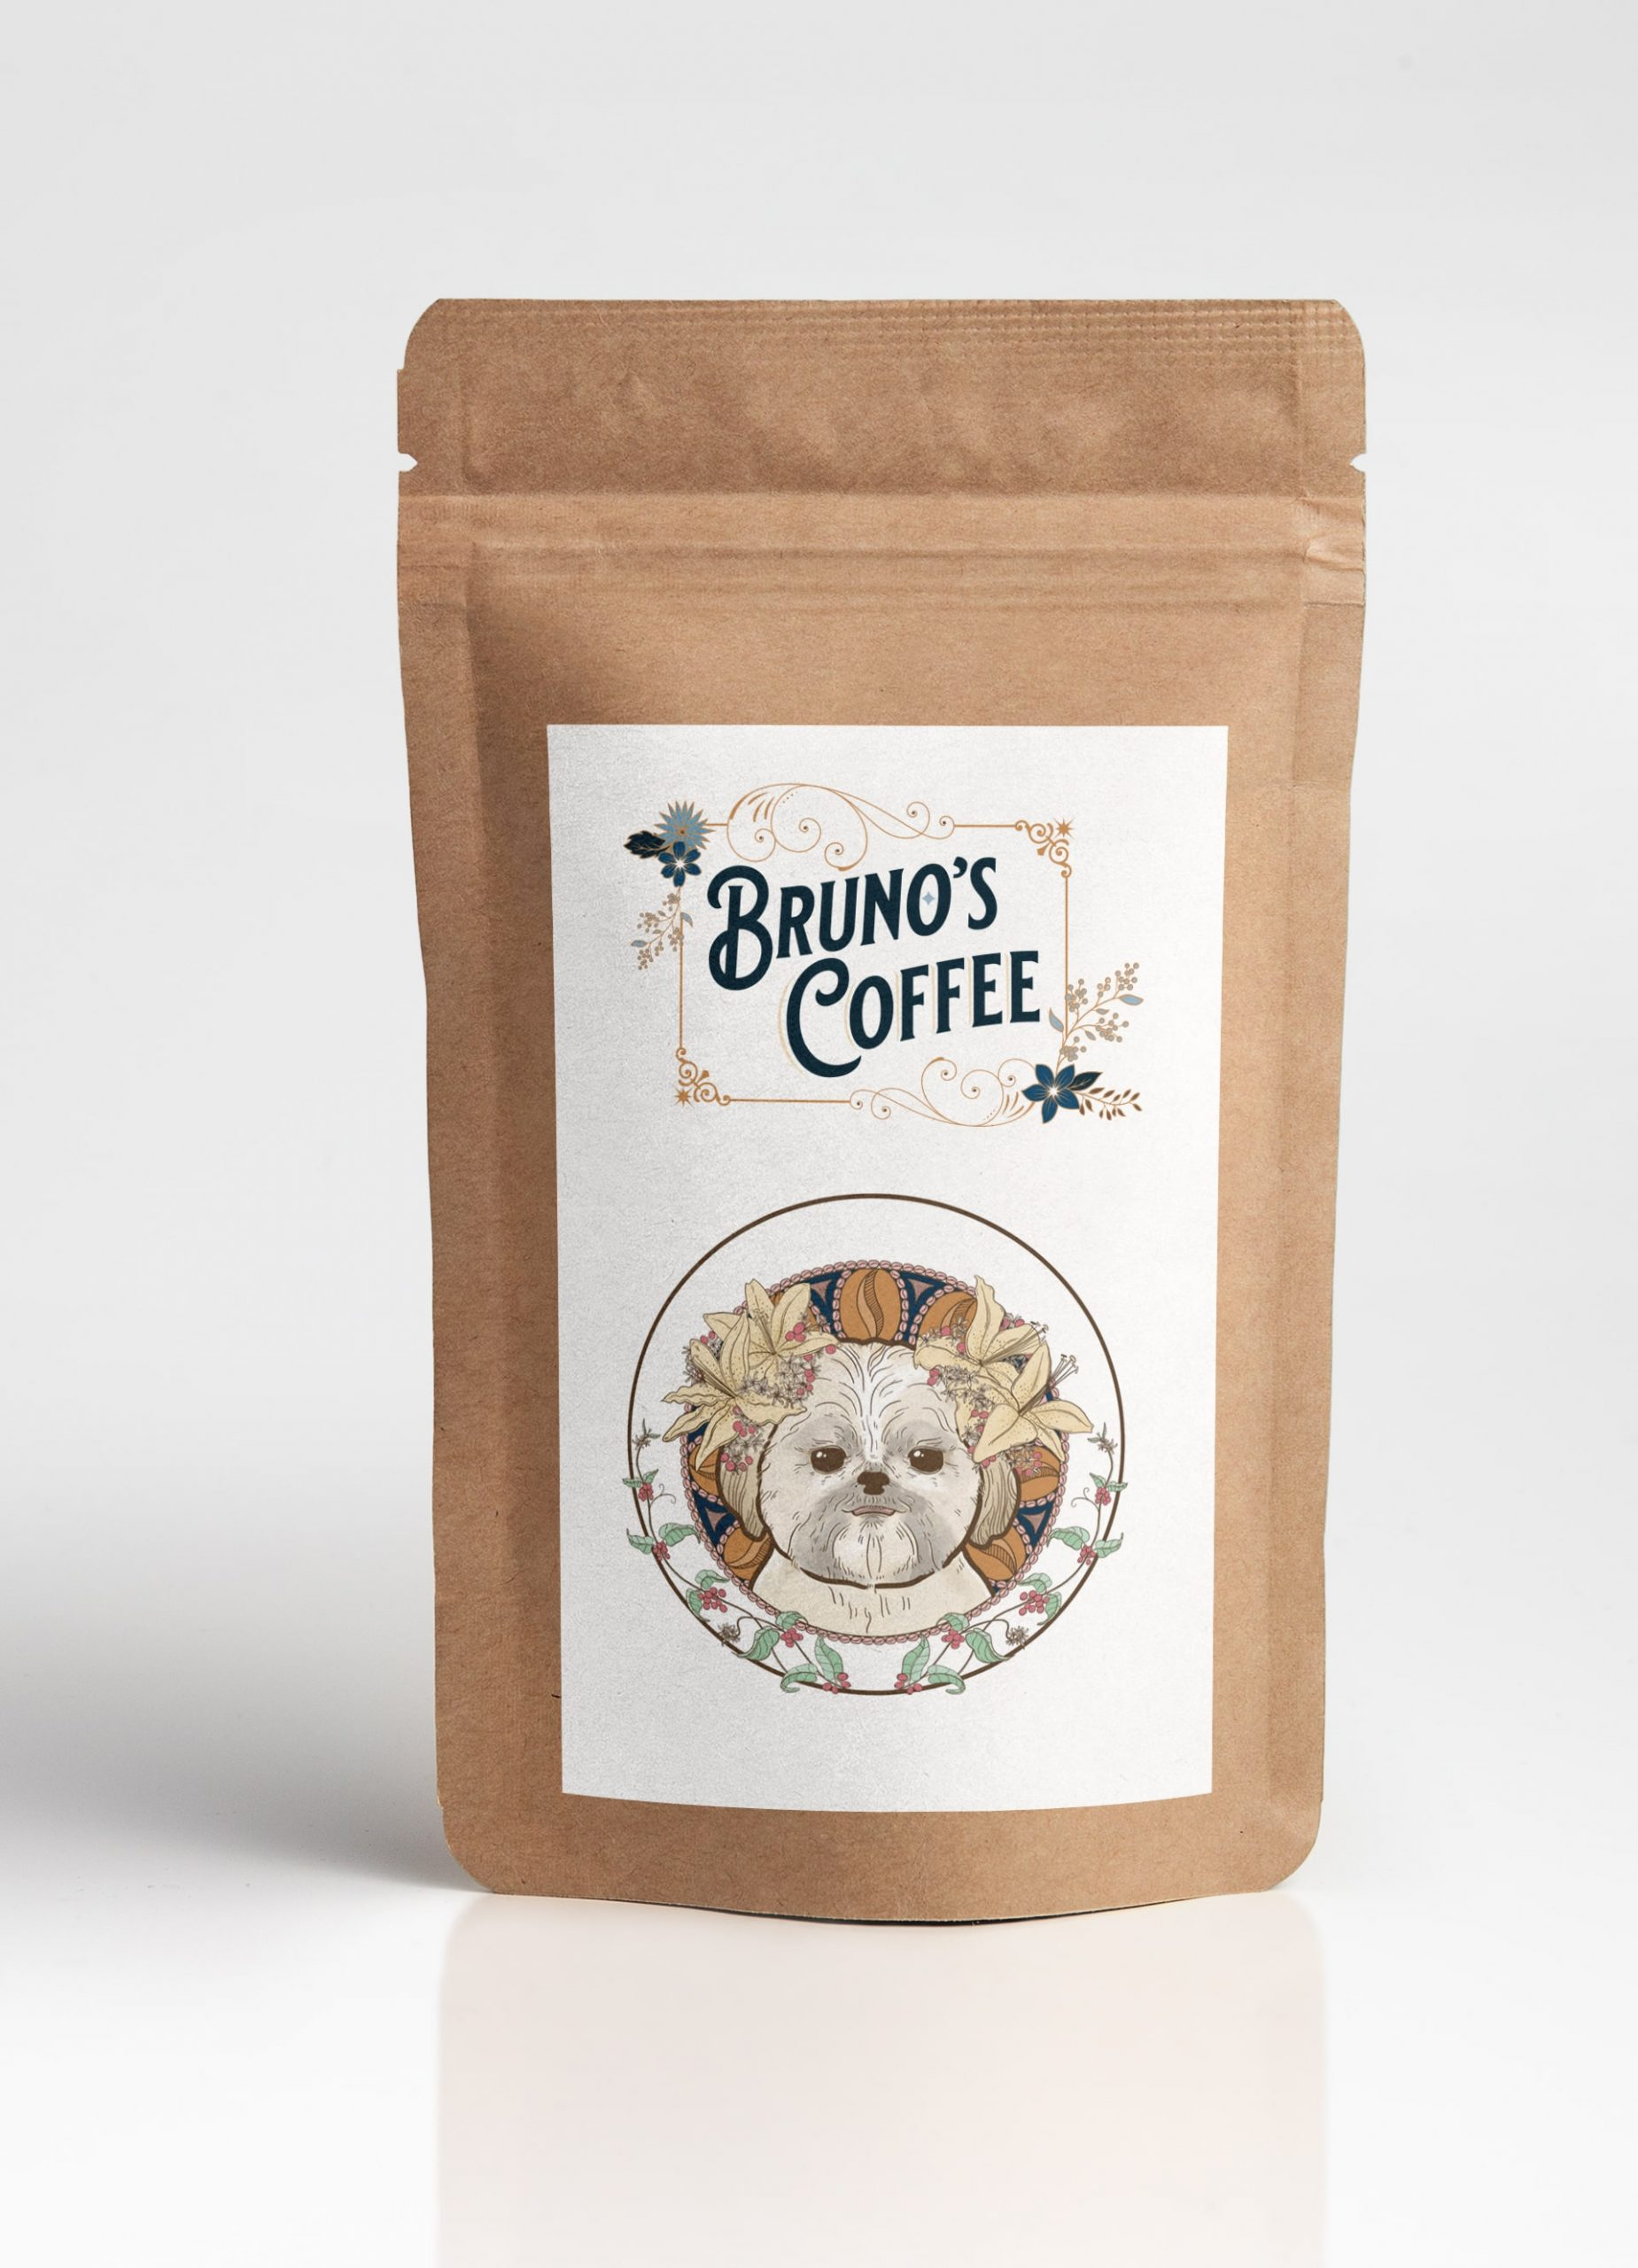 Bruno's Coffee Branding and Package Design